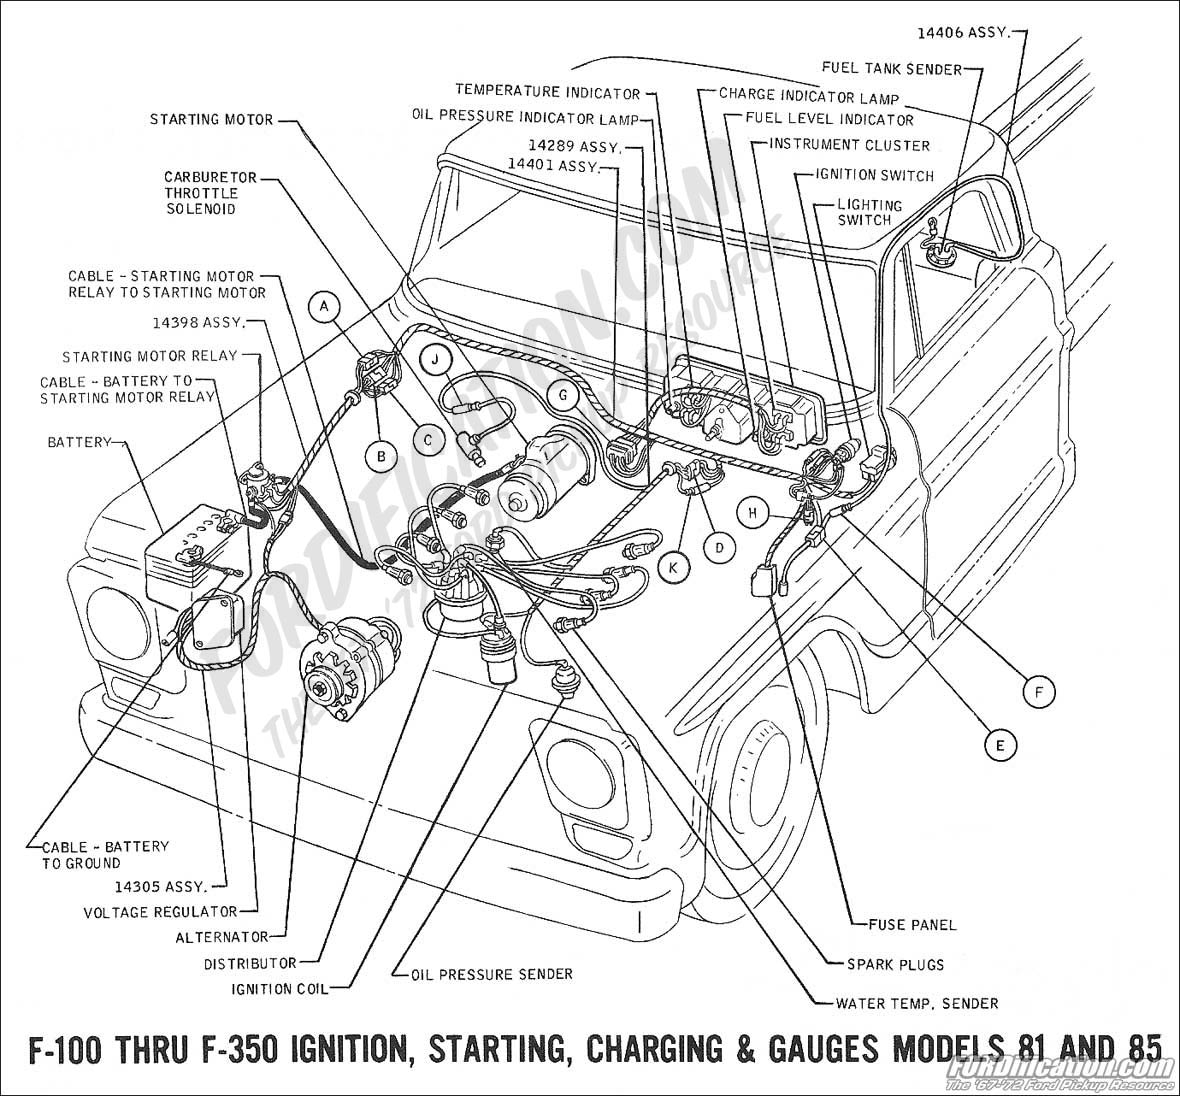 1978 Corvette Starter Wiring Diagram Data Diagrams 1968 For Ford Truck Technical Drawings And Schematics Section H 68 C3